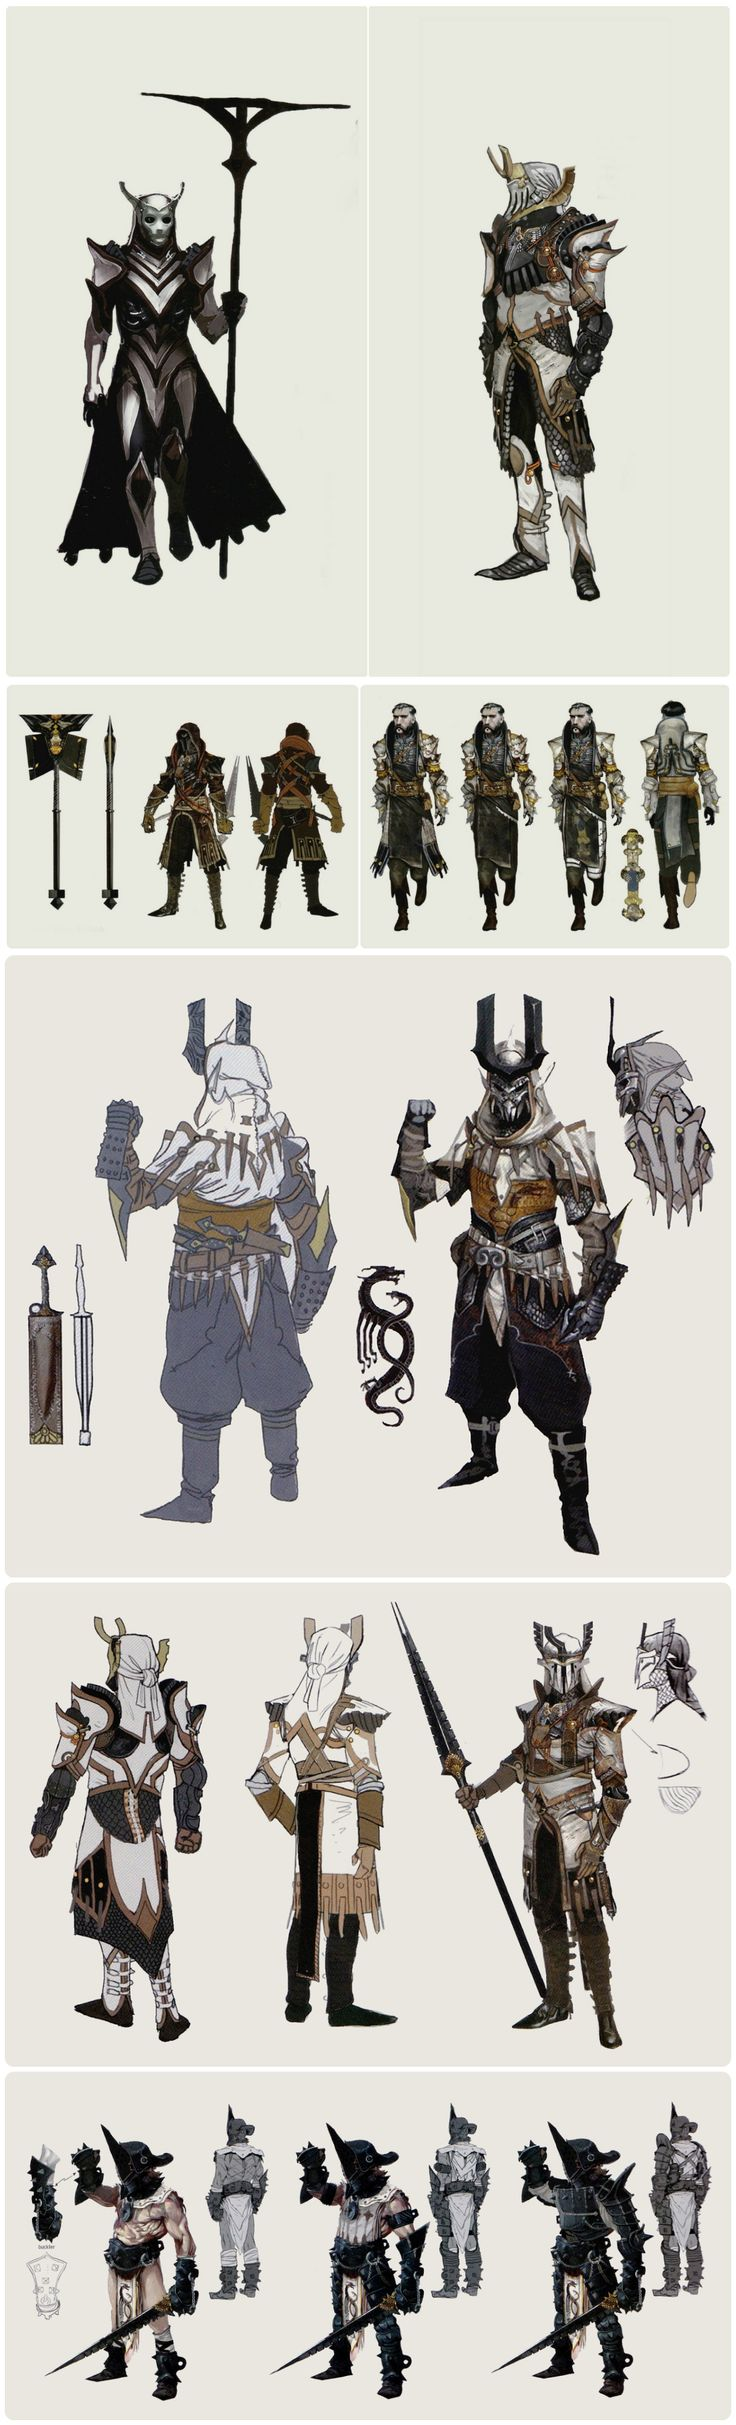 Dragon Age Inquisition Character Design Ideas : Venatori concept art in the of dragon age inquisition